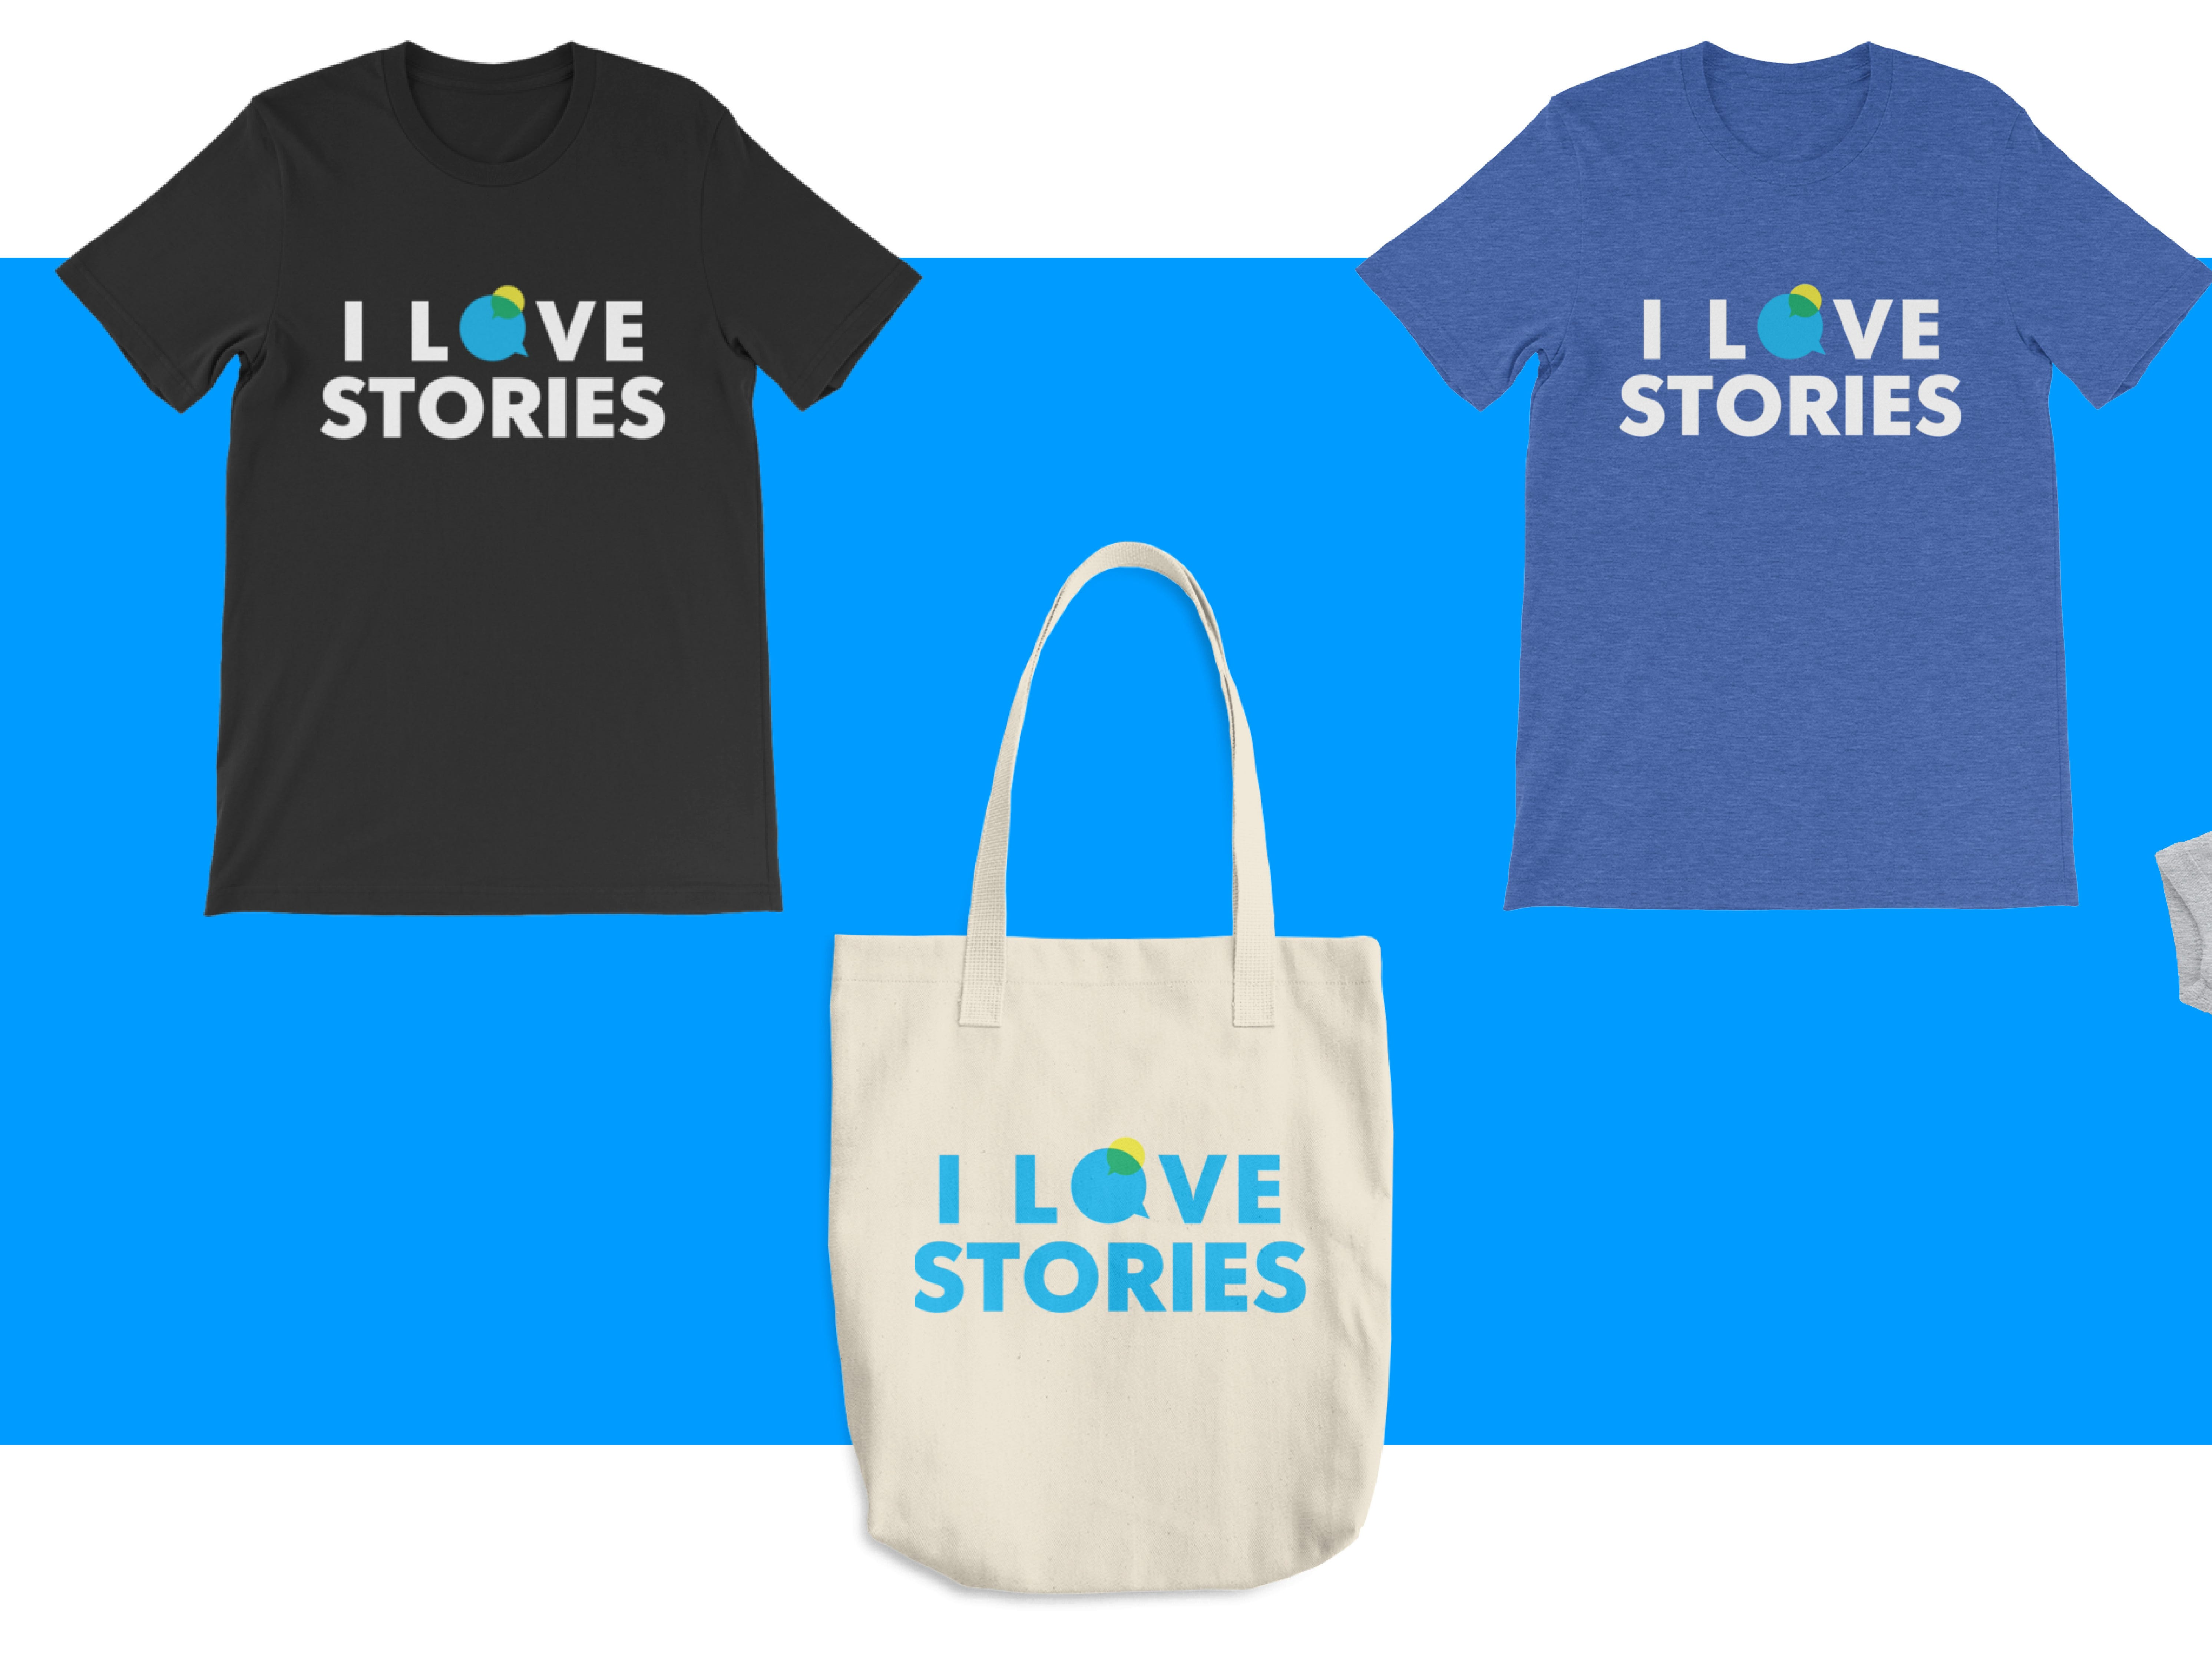 You've heard the stories, now you can show your love of them. Shirts, totes, notebooks and more ship for free.